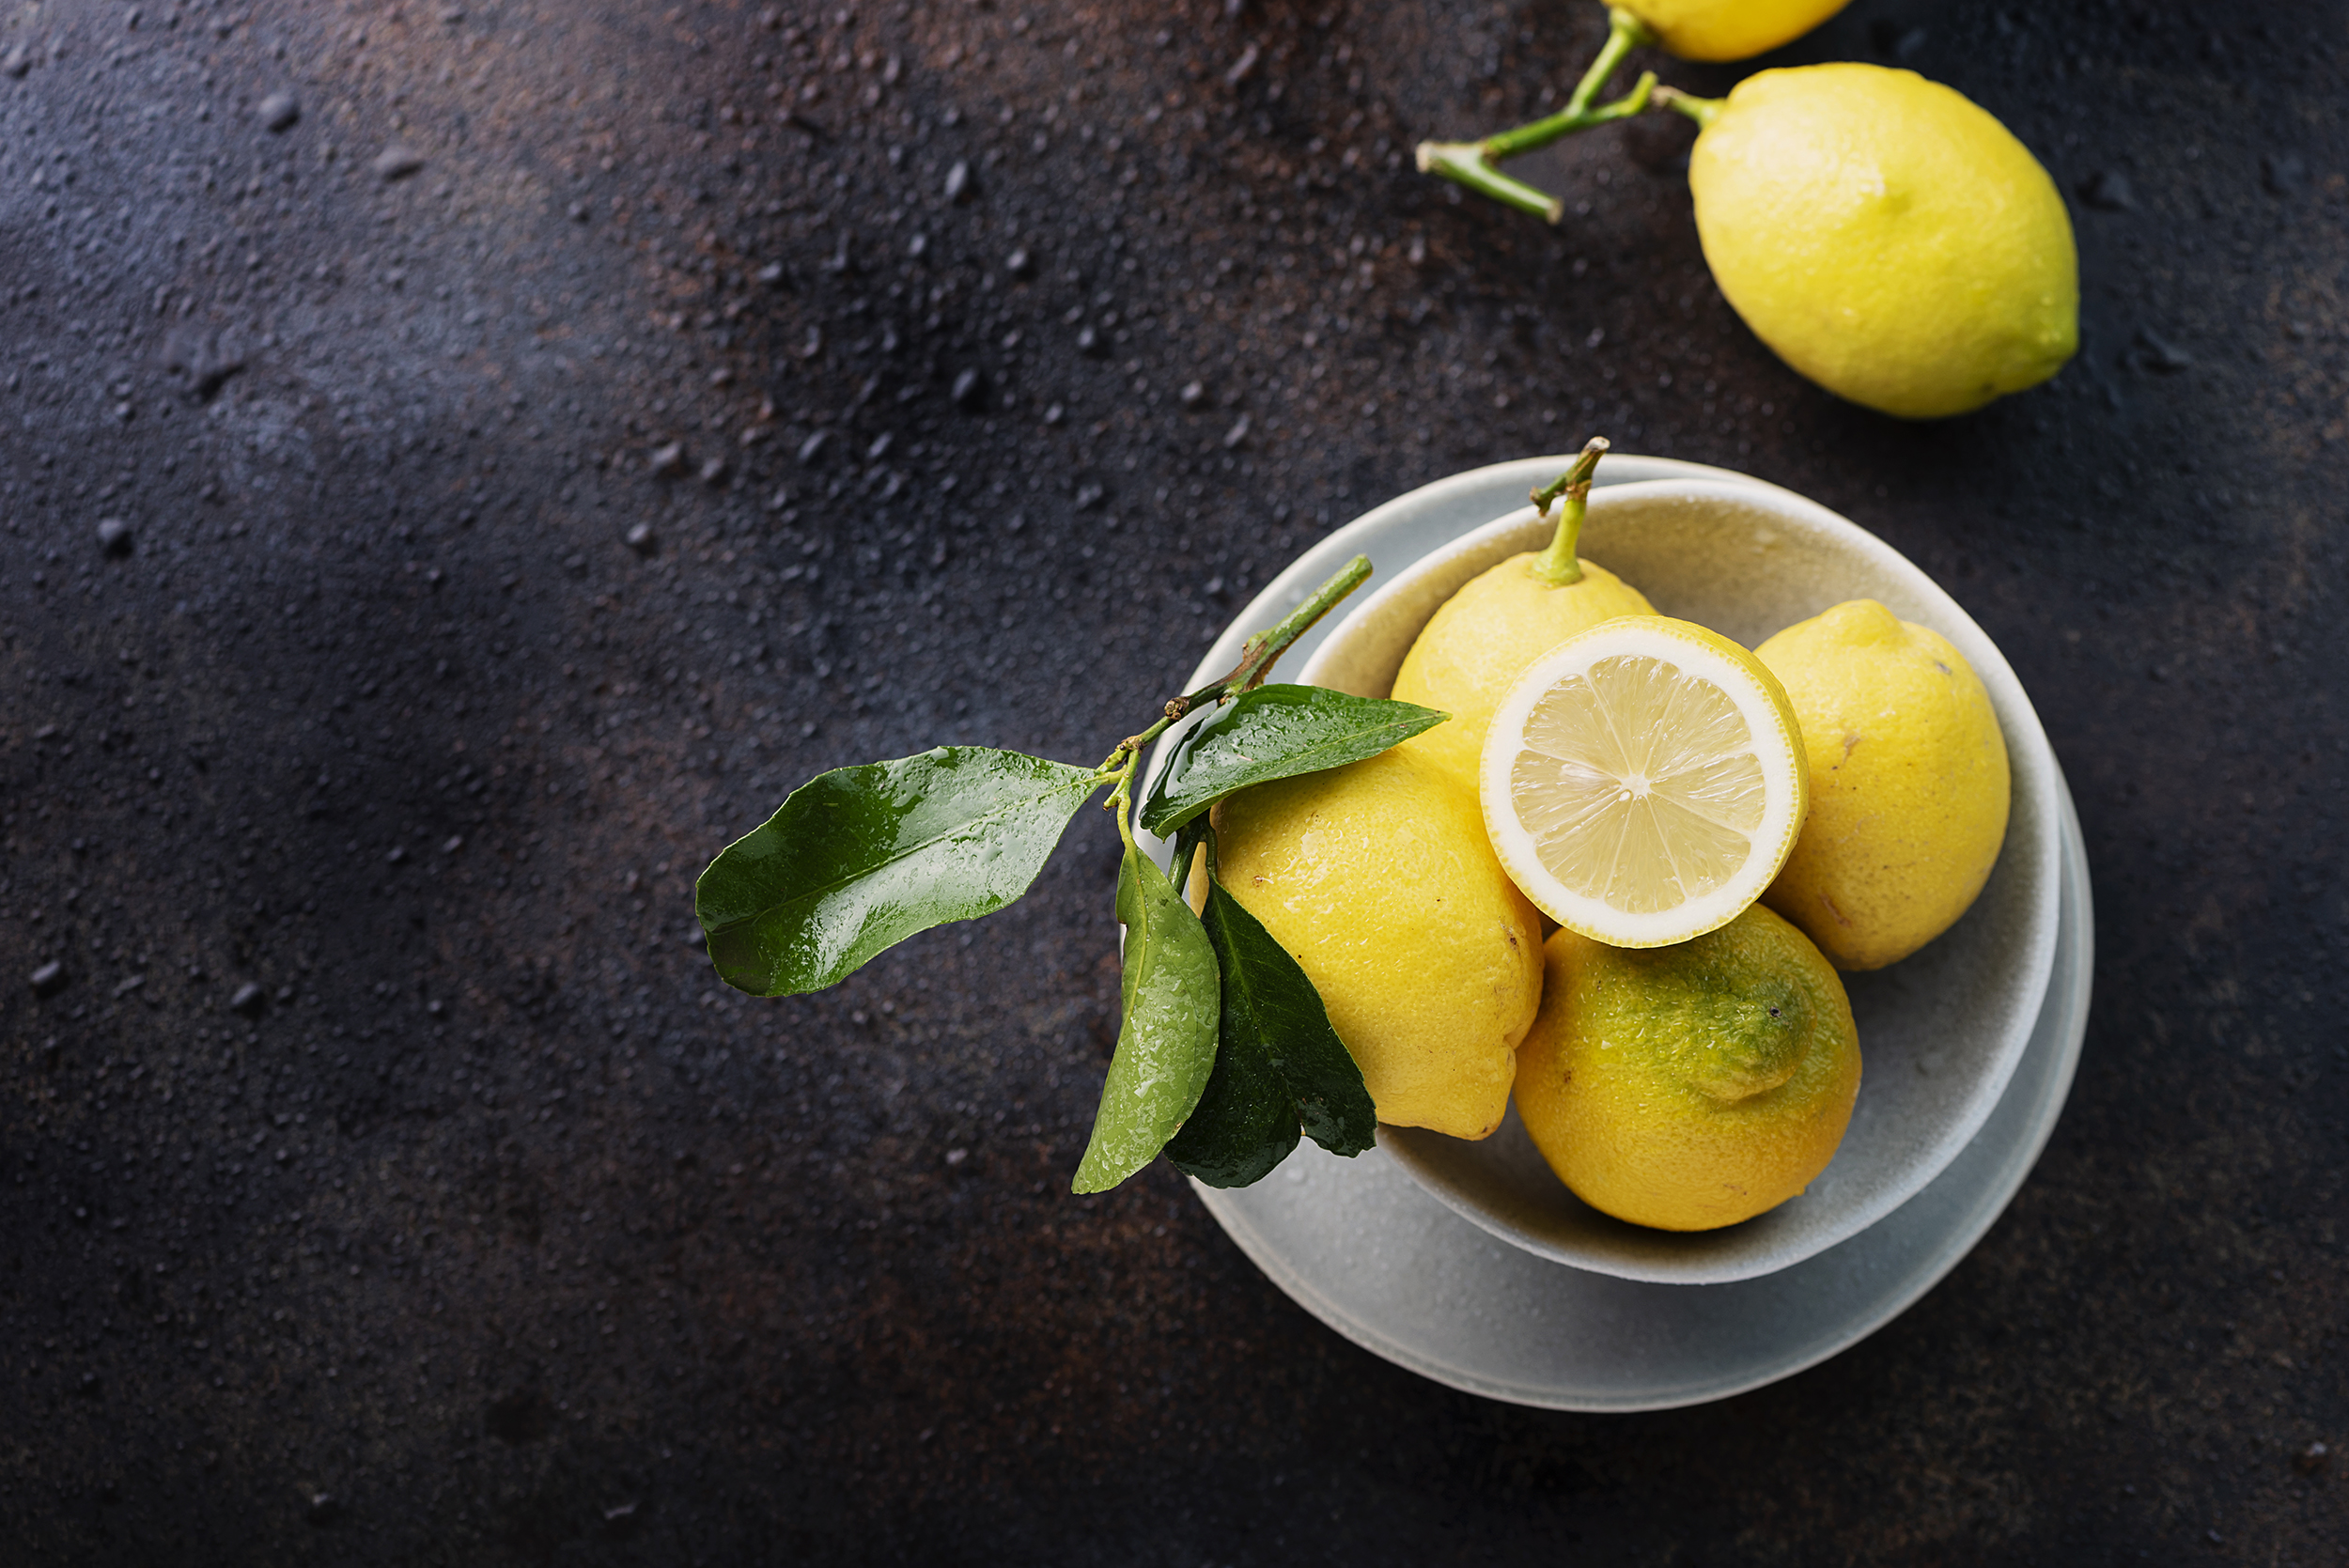 How to care for a lemon tree in a pot